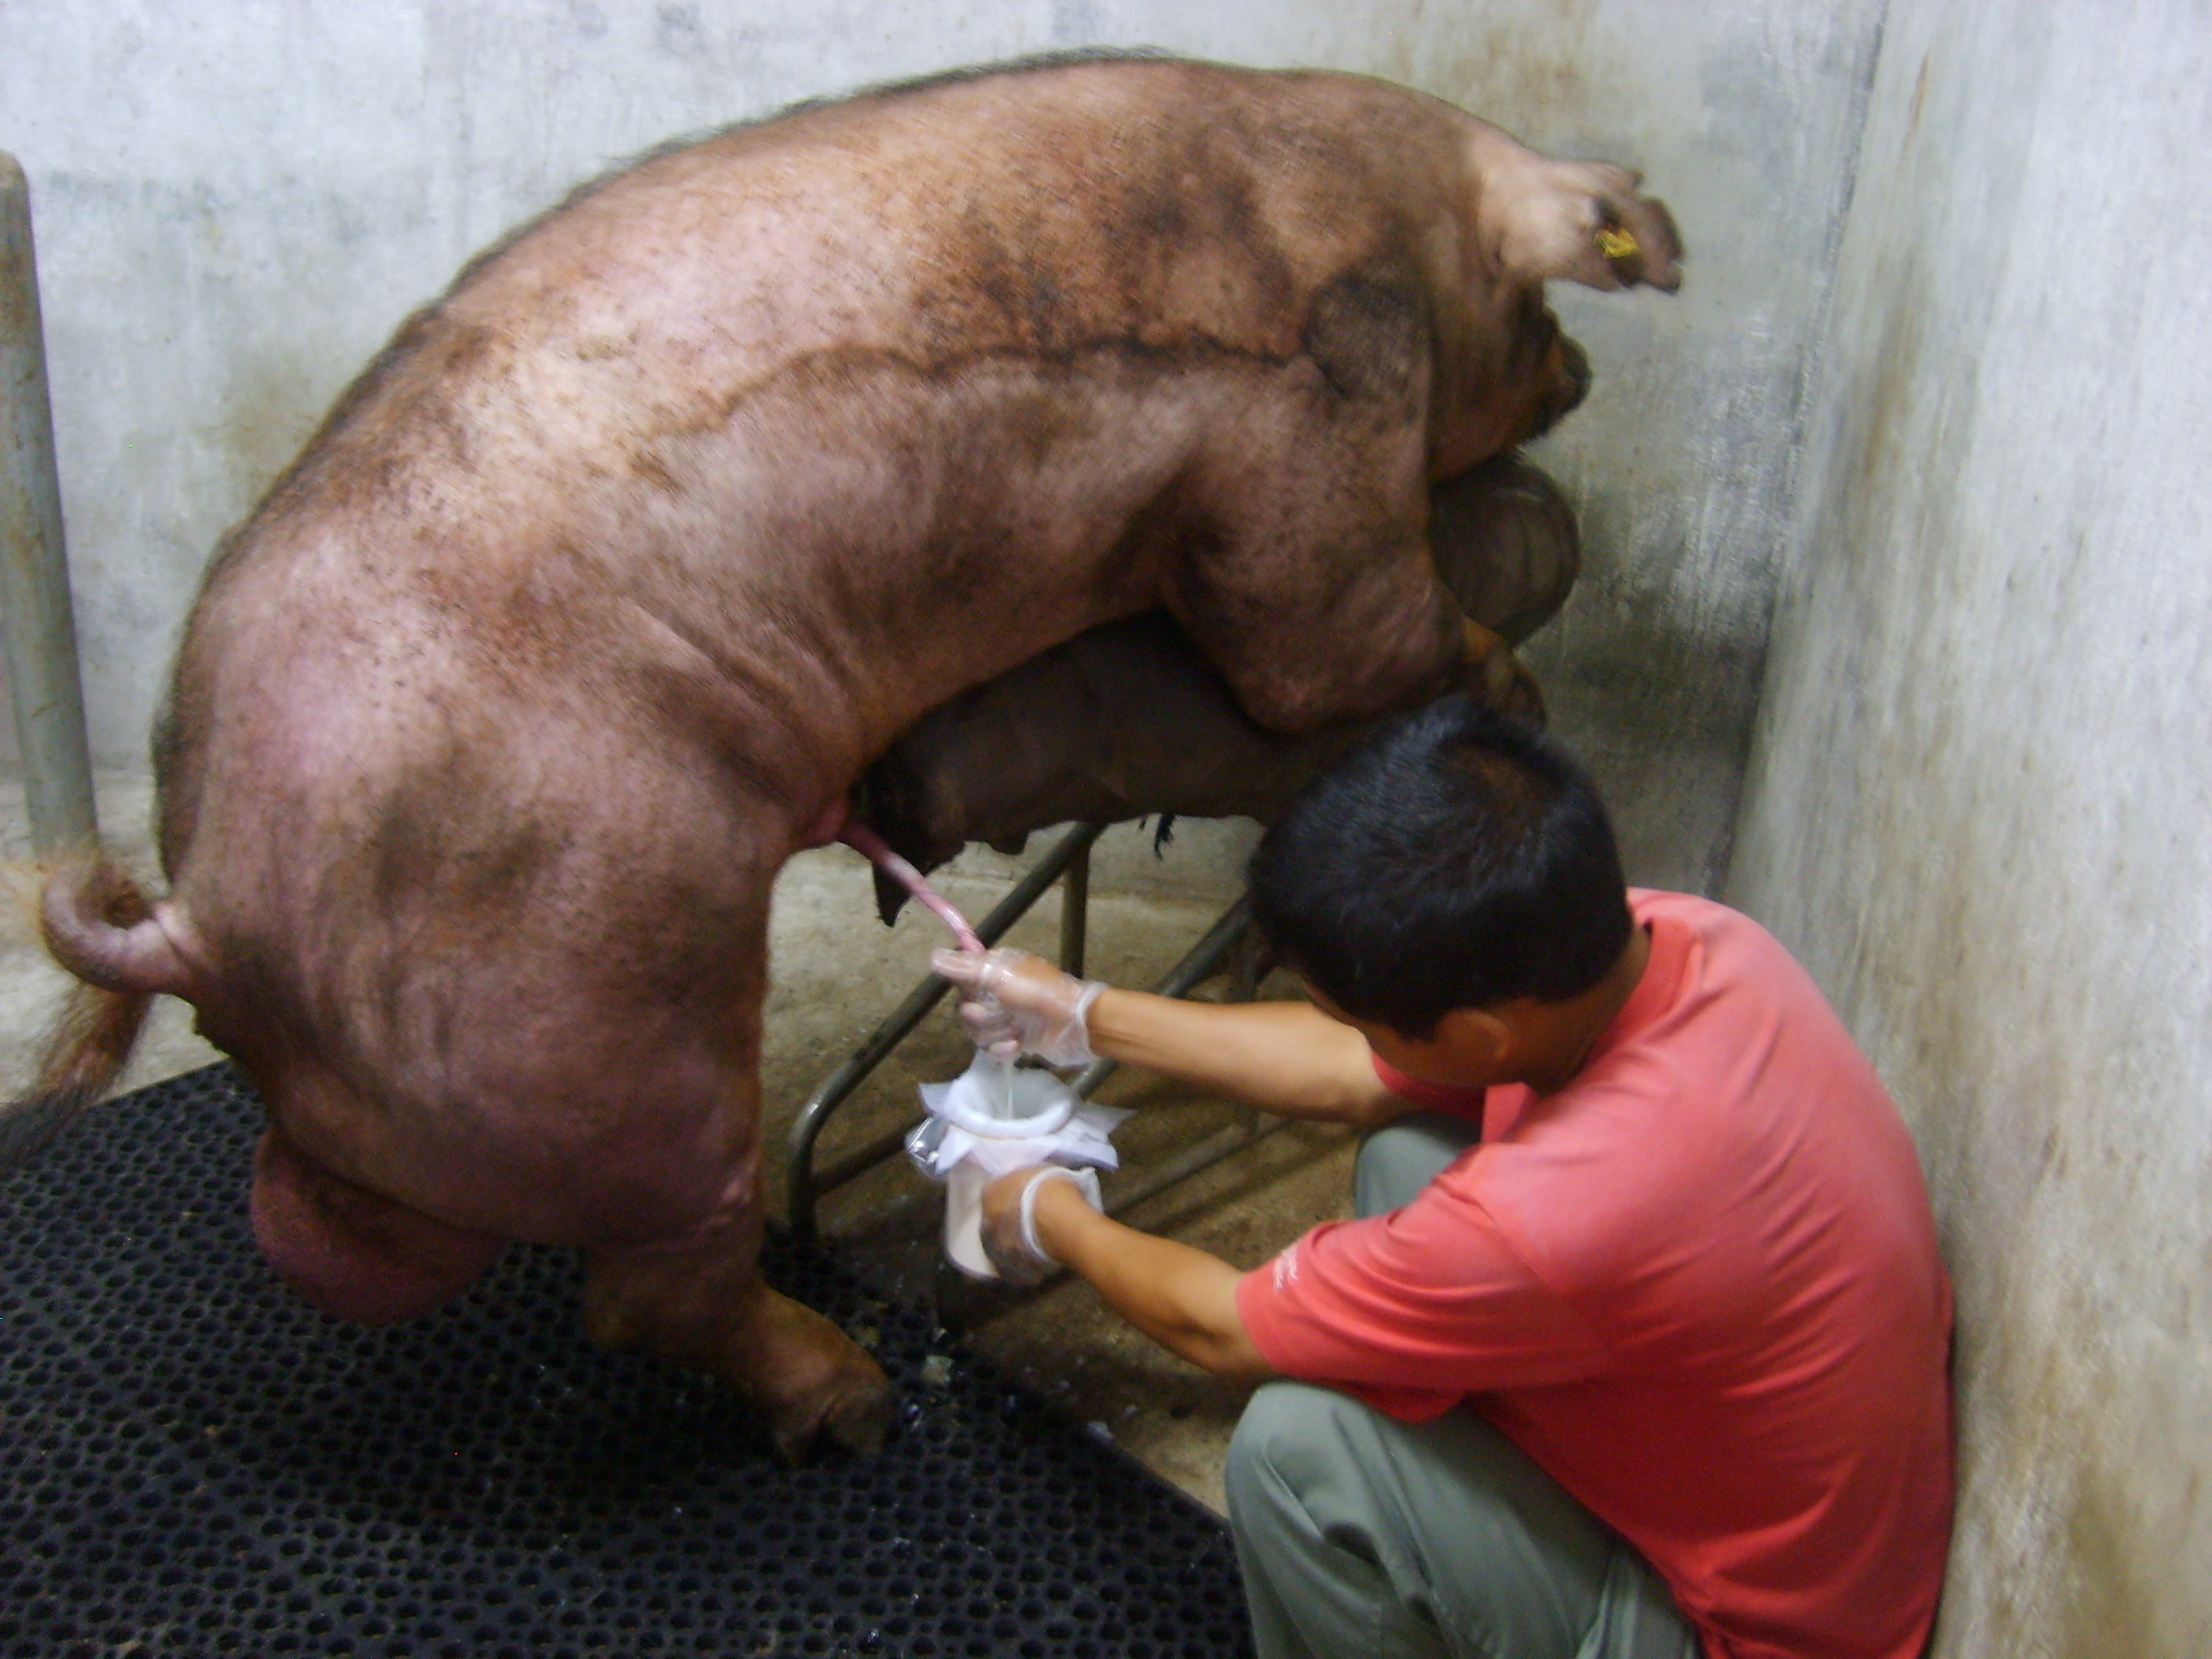 Descripción Man Is Collecting Semen From A Boar.JPG